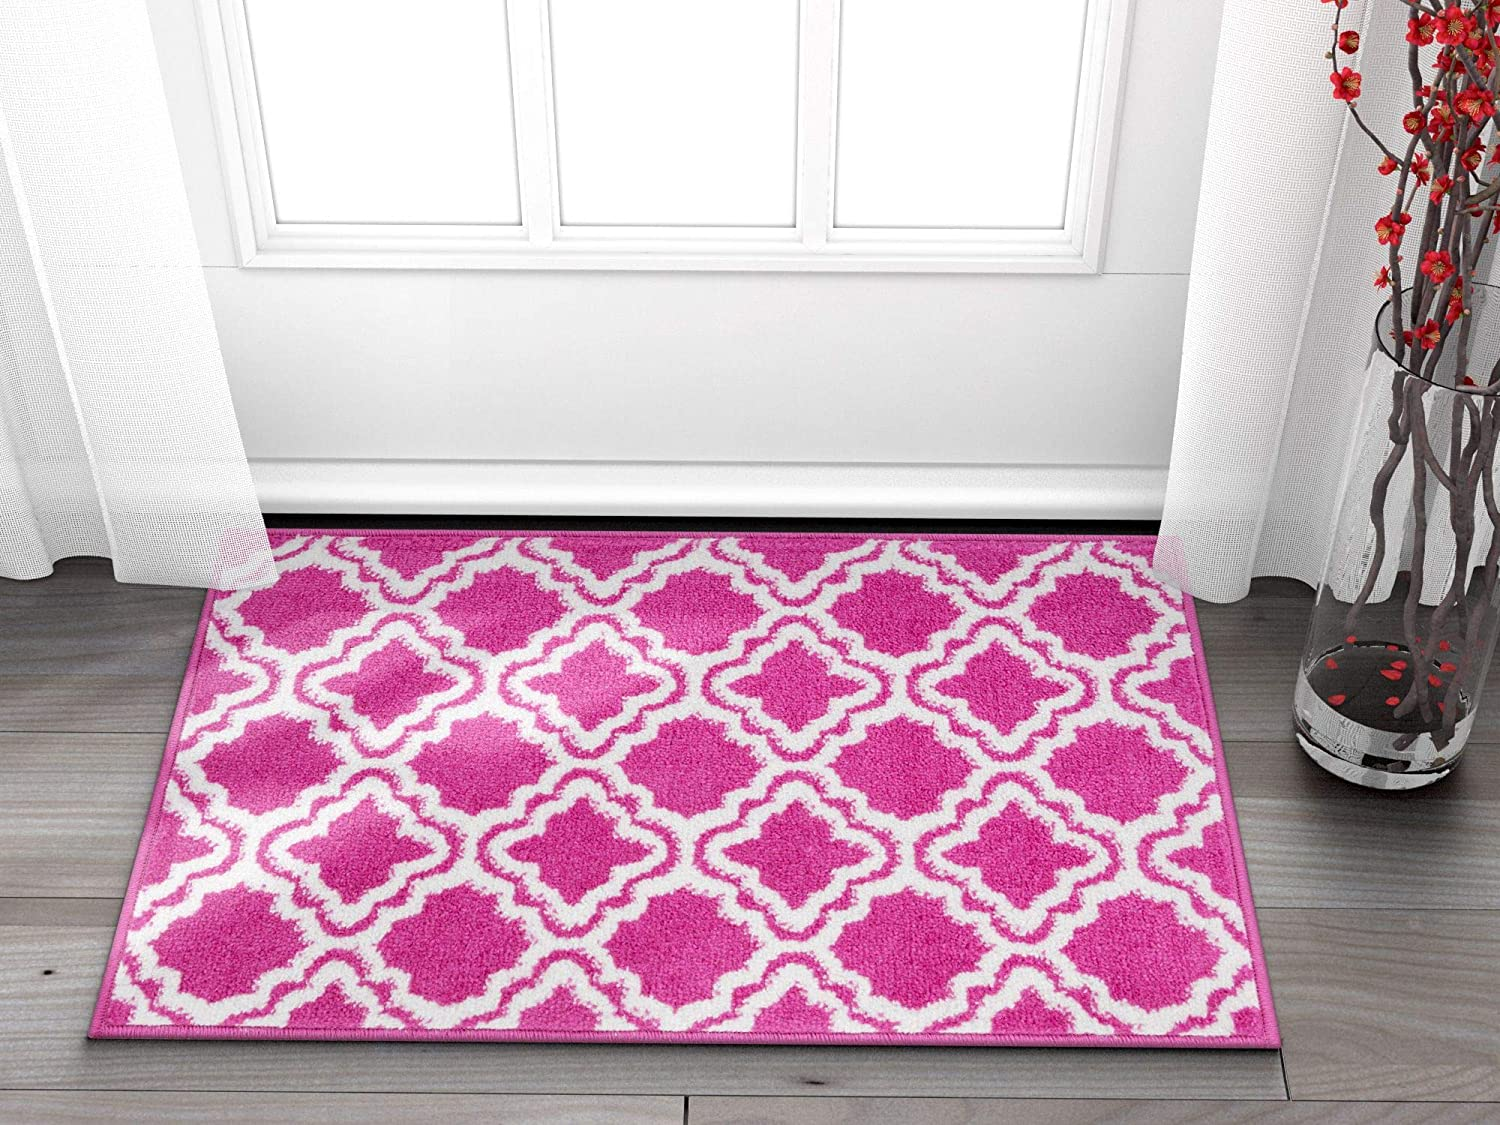 Well Woven Small Rug Mat Doormat Modern Kids Room Kitchen Rug Calipso Pink 1'8  x 2'7  Lattice Trellis Accent Area Rug Entry Way Bright Carpet Bathroom Soft Durable